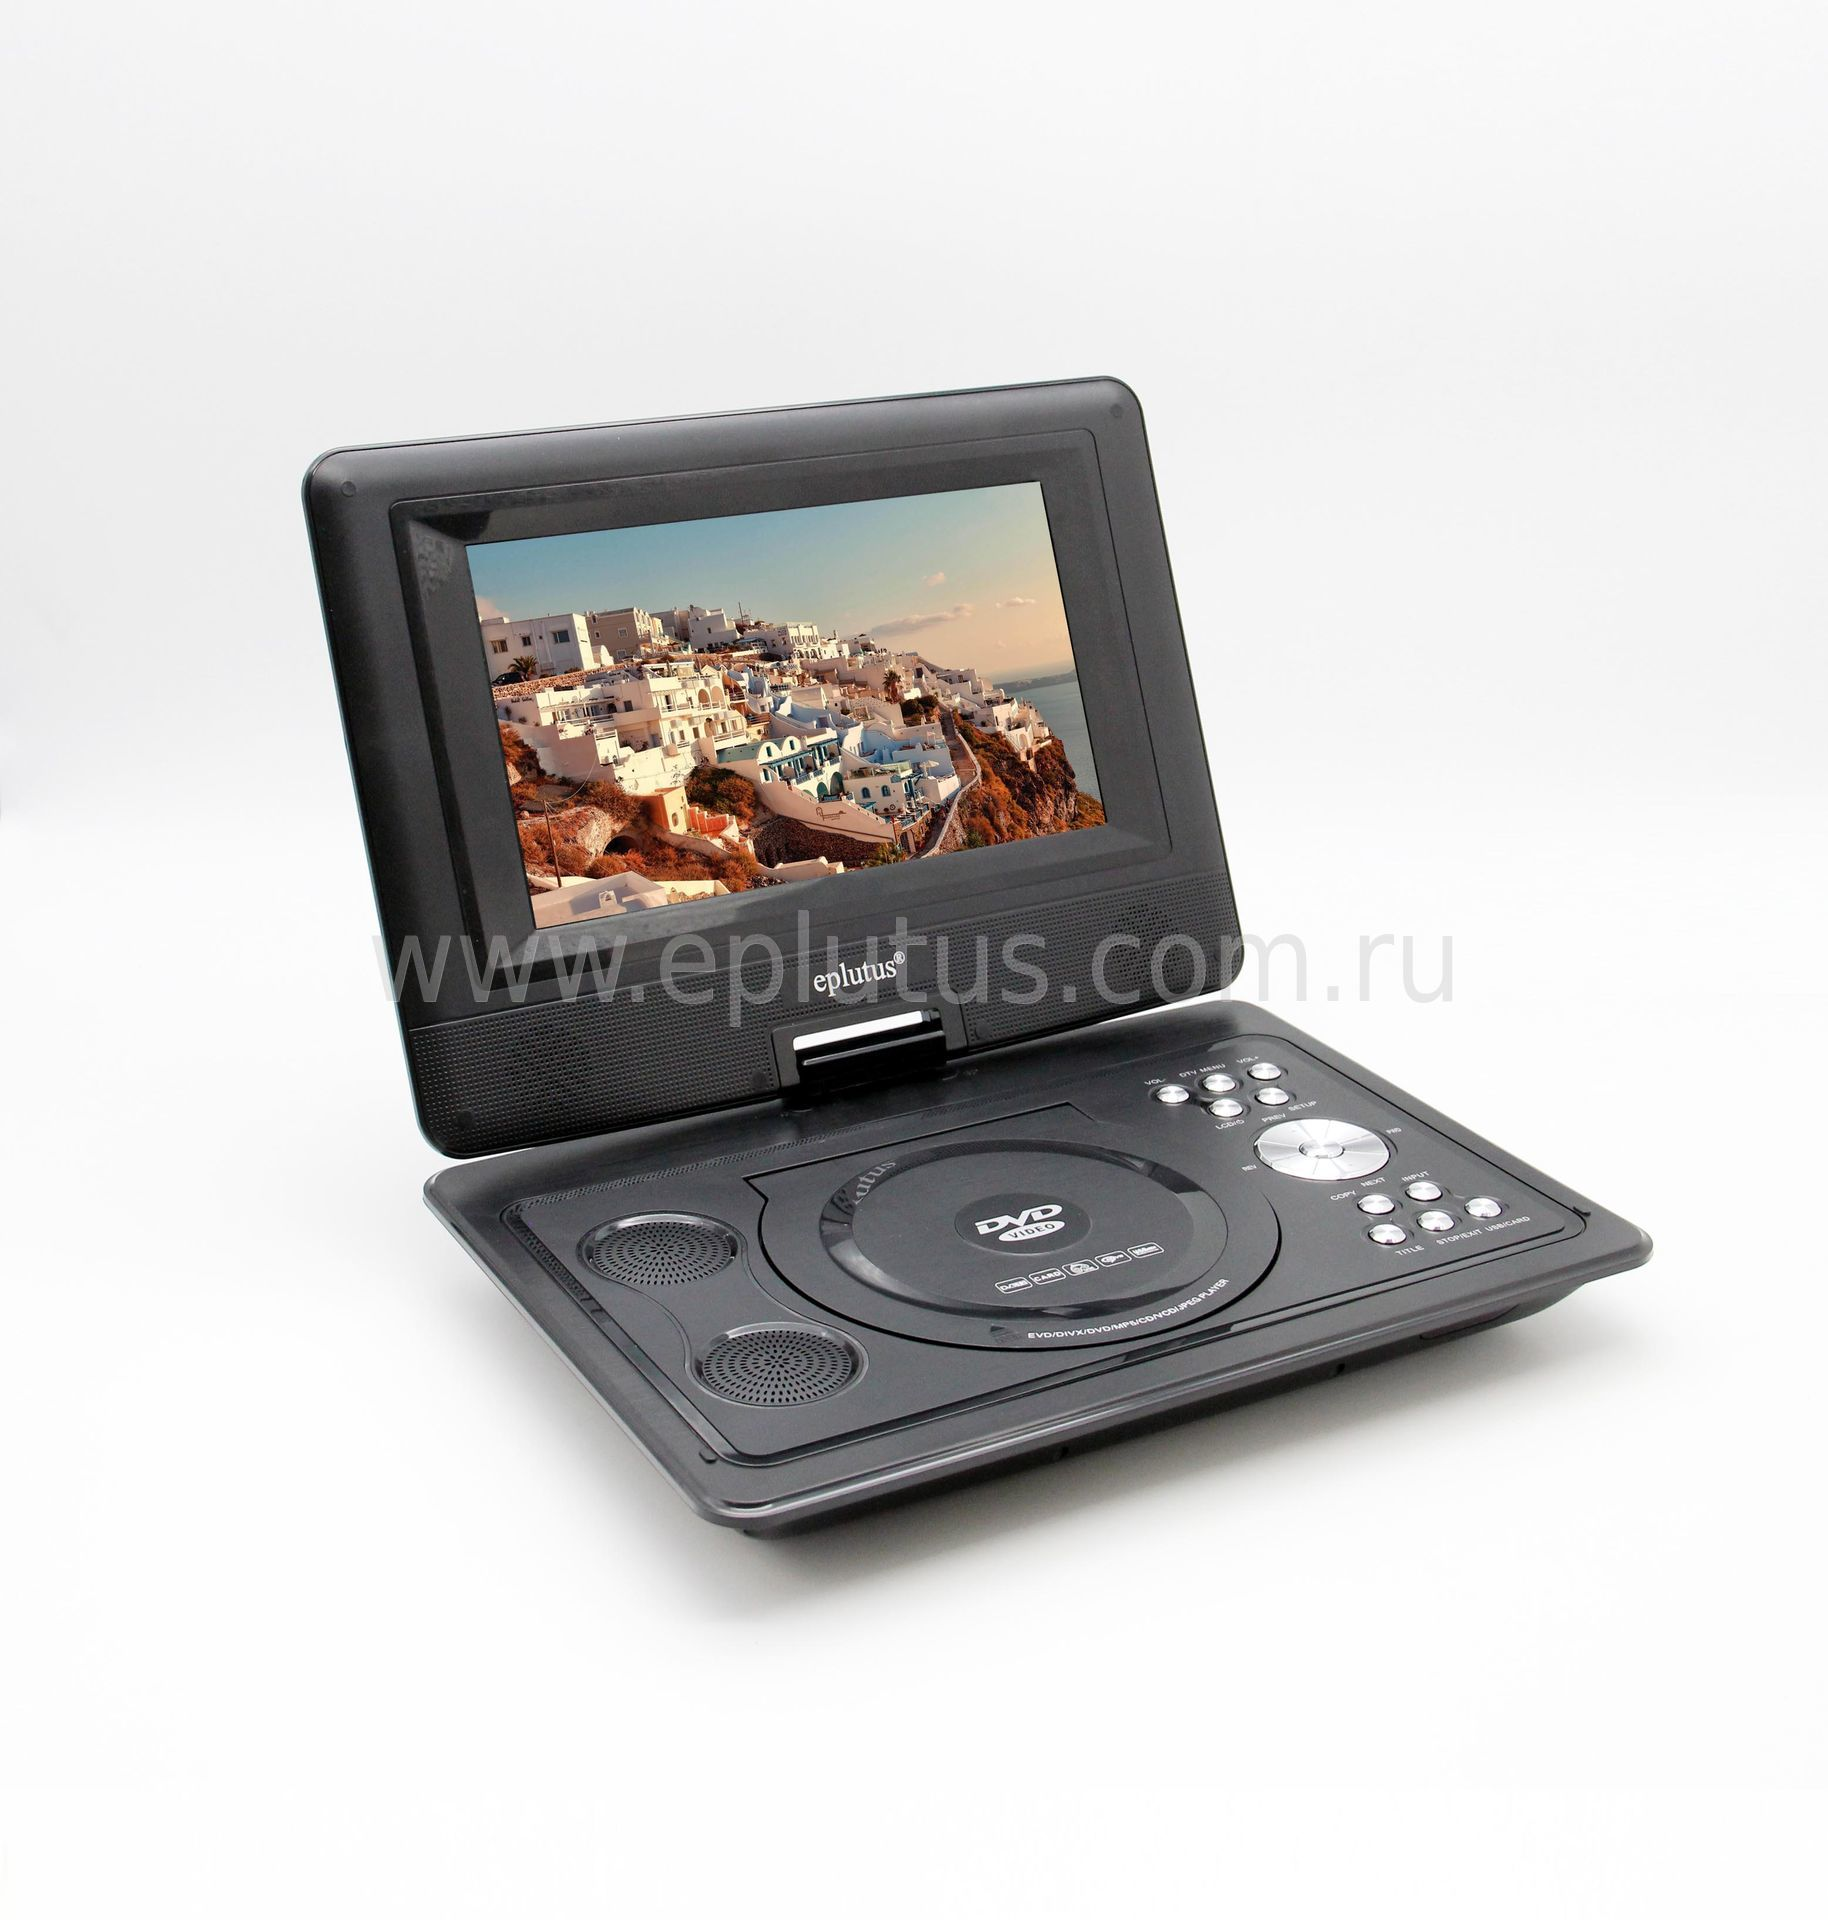 Eplutus EP-9521T автомобильный dvd плеер lg 2 din mazda 5 dvd gps tv 3g wifi bt usb sd 8